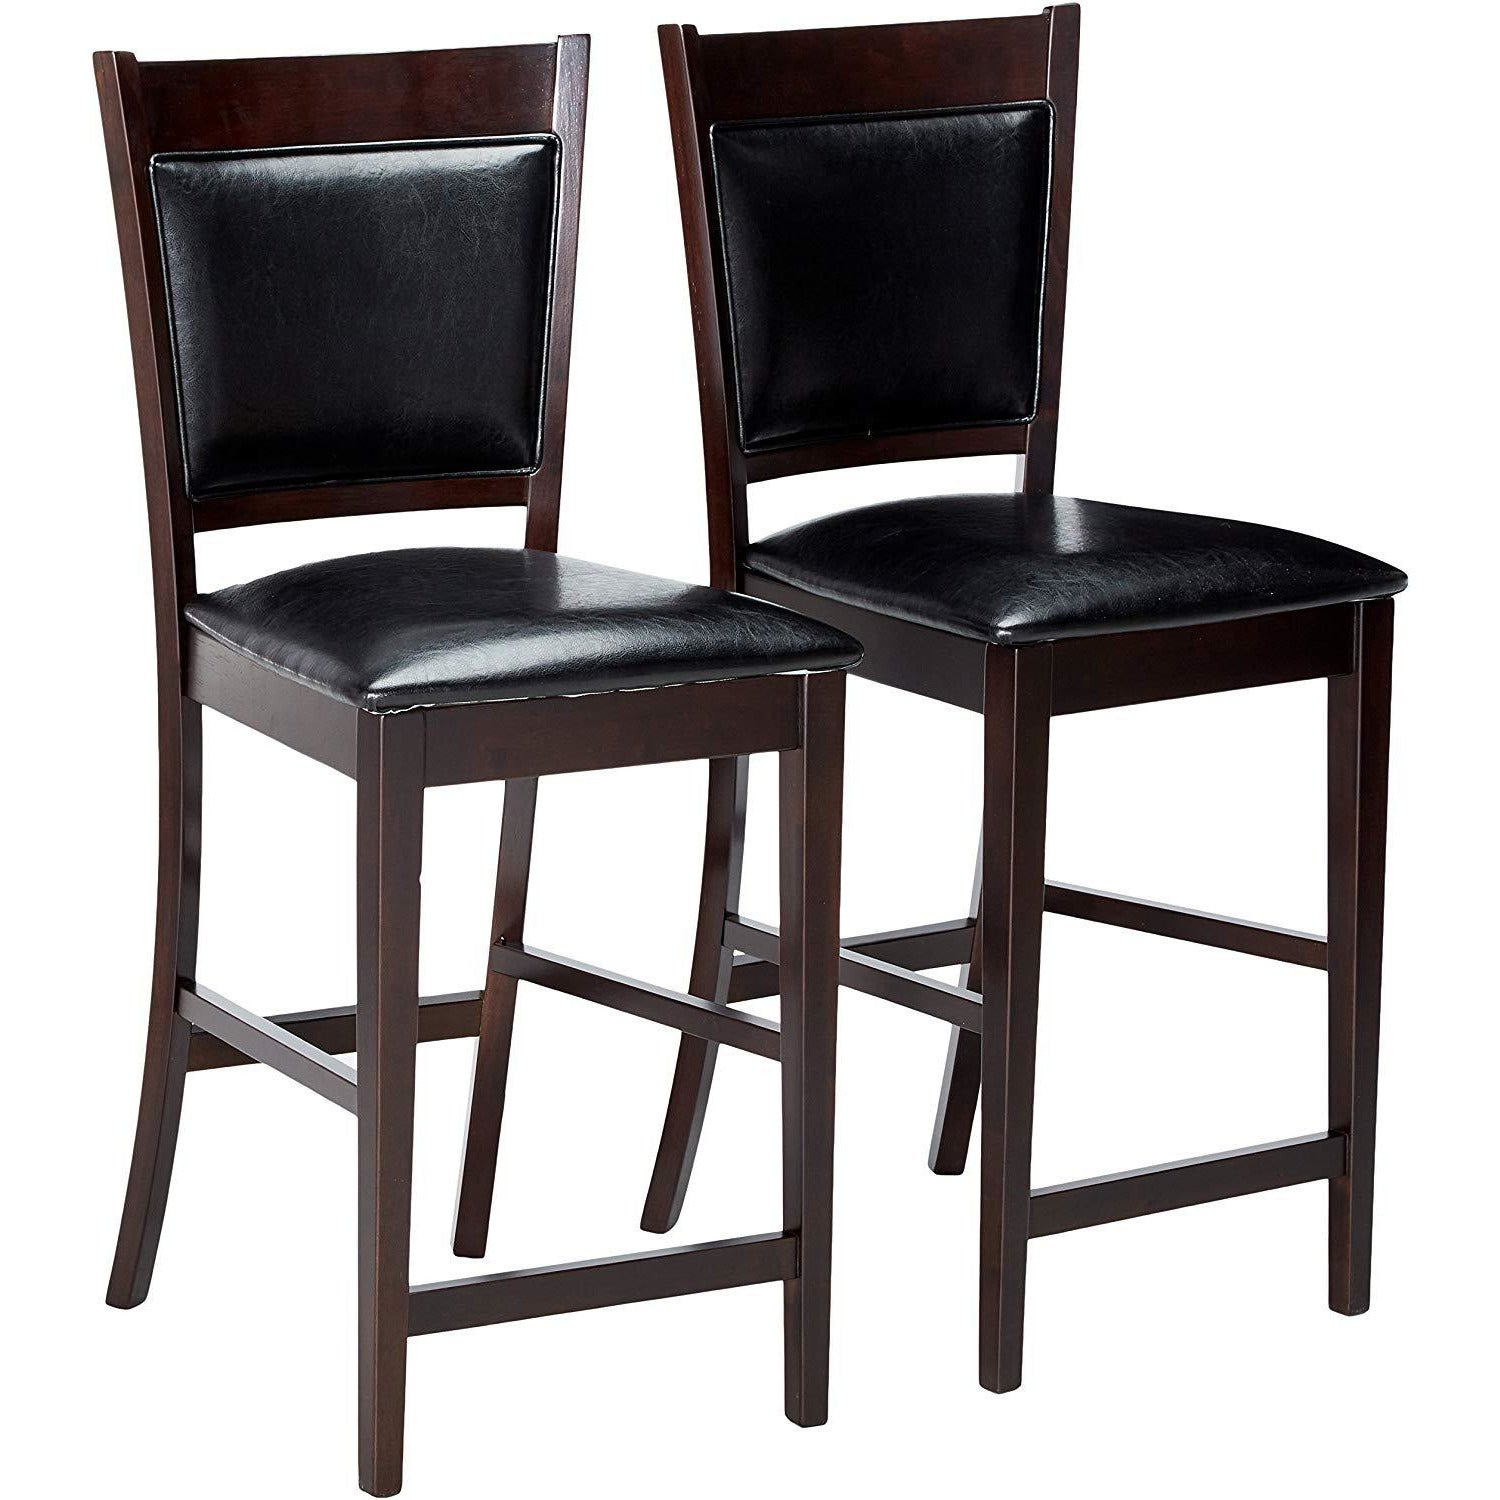 Coaster 100959 | Set Of 2 Upholstered Seat and Back Counter Height Stools Dining Chairs With Footrest